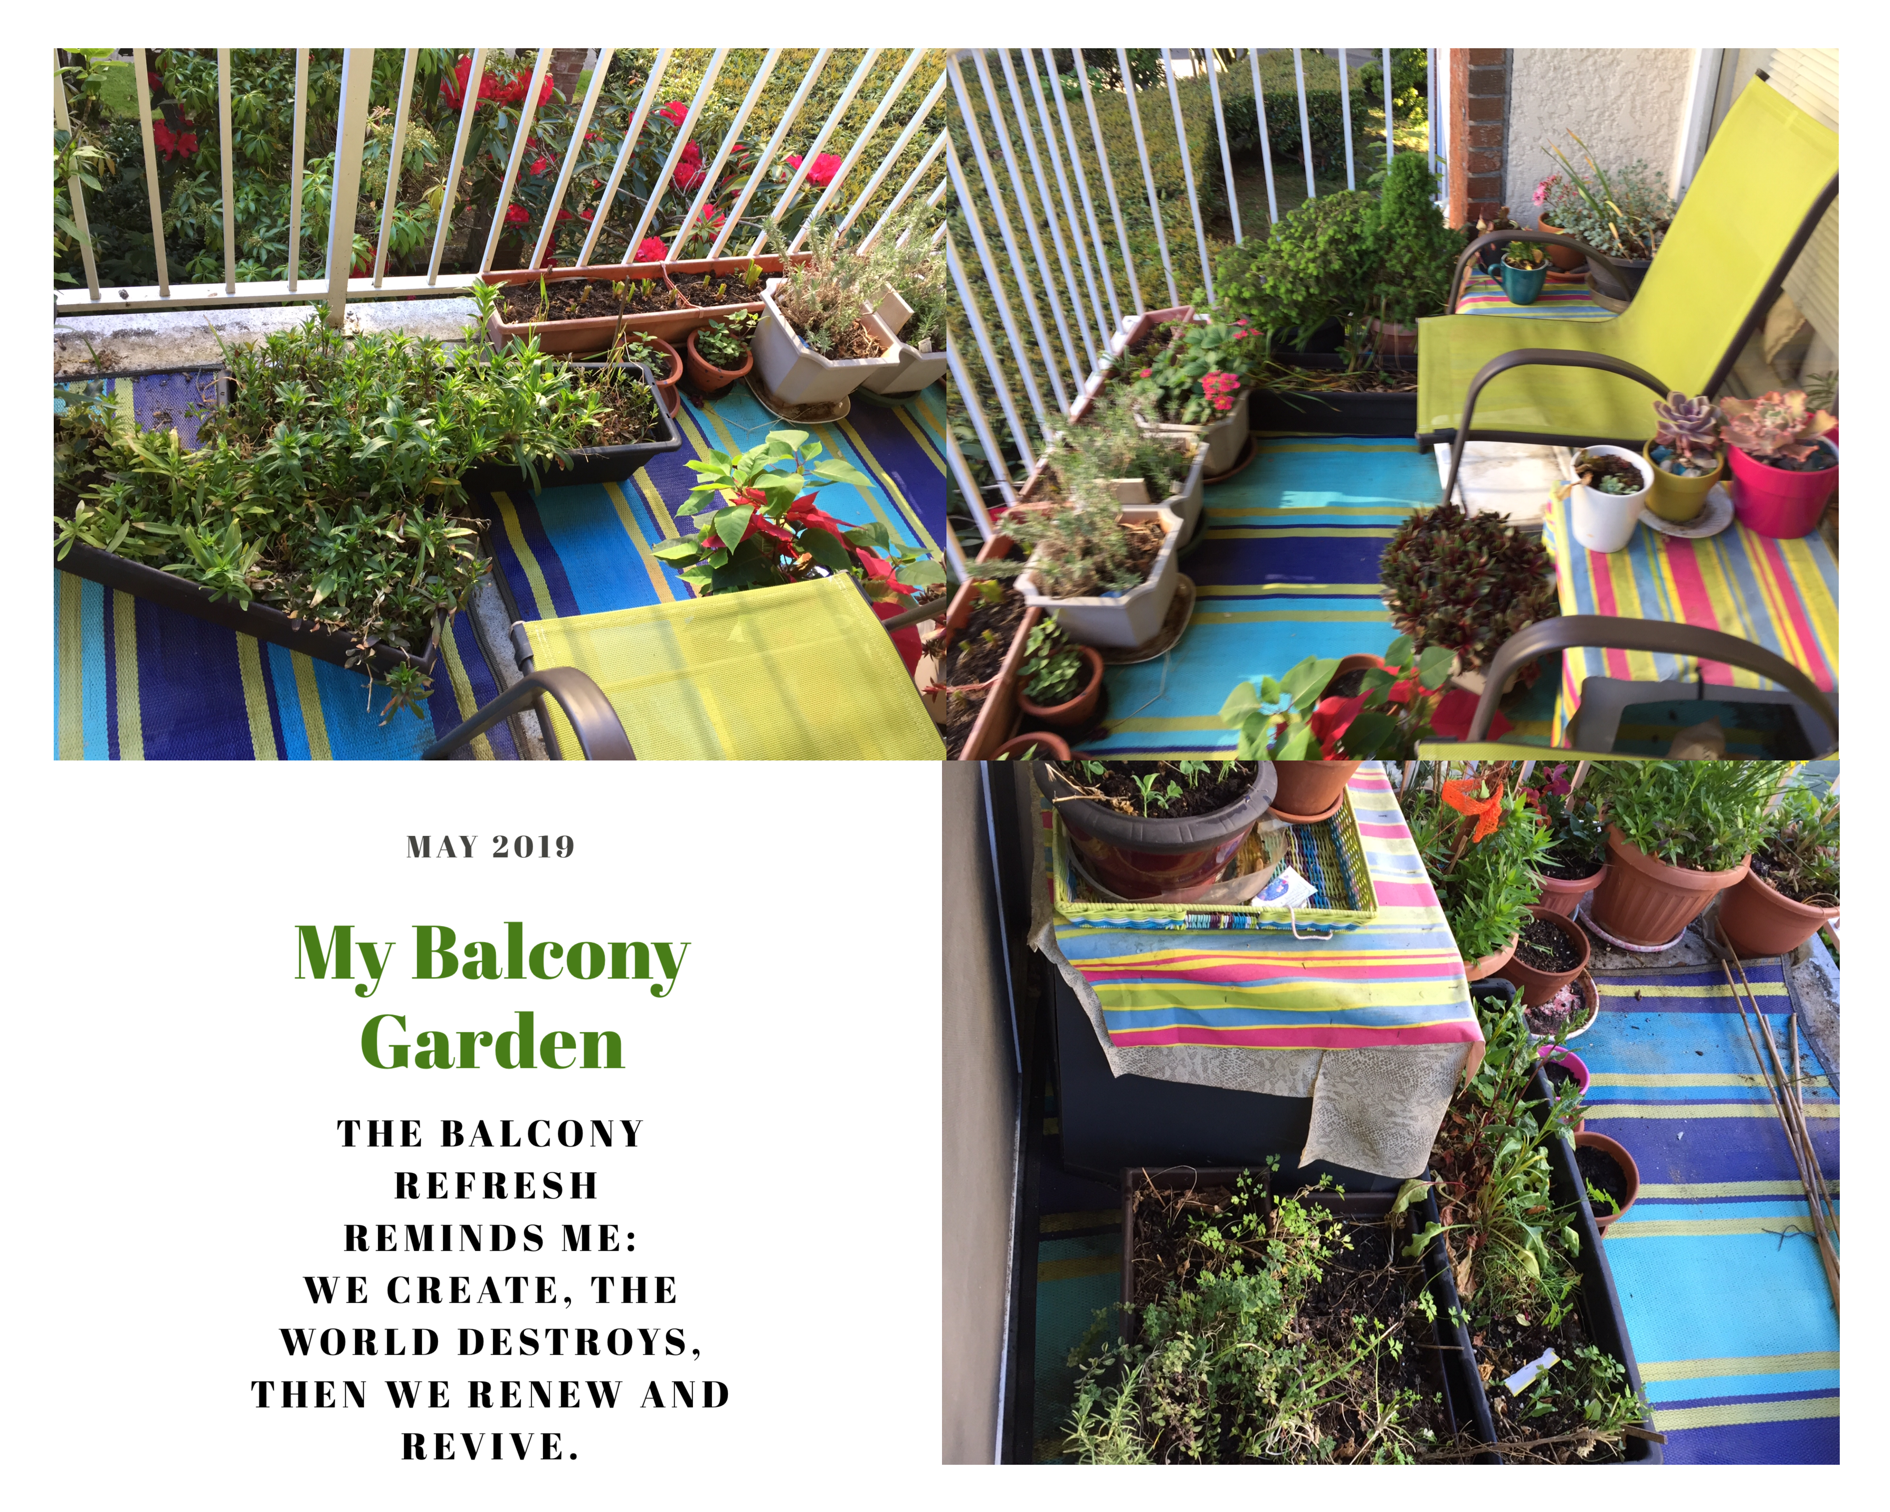 Balcony clean up